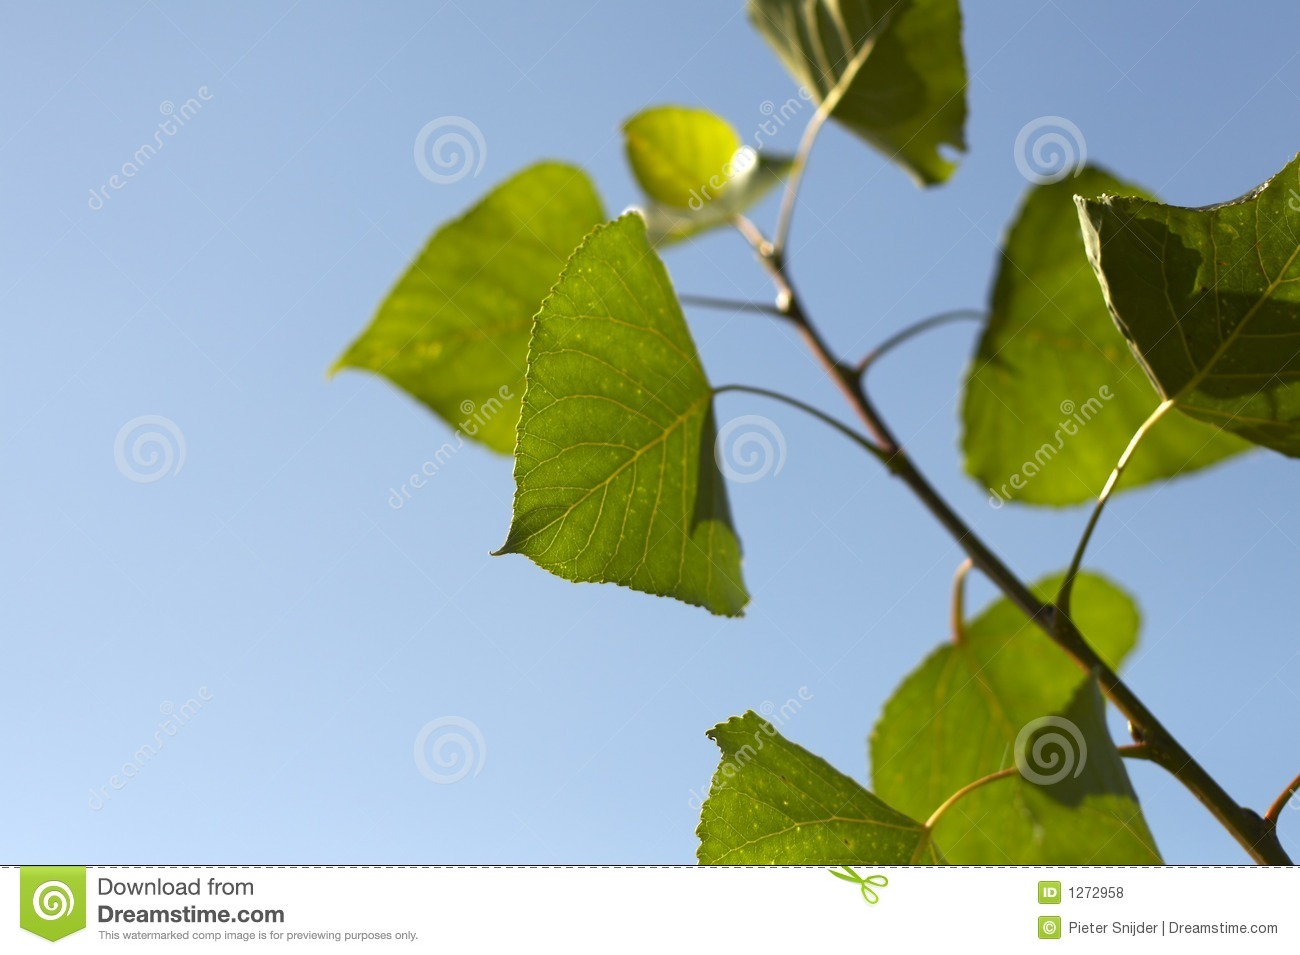 how to clean green leaves